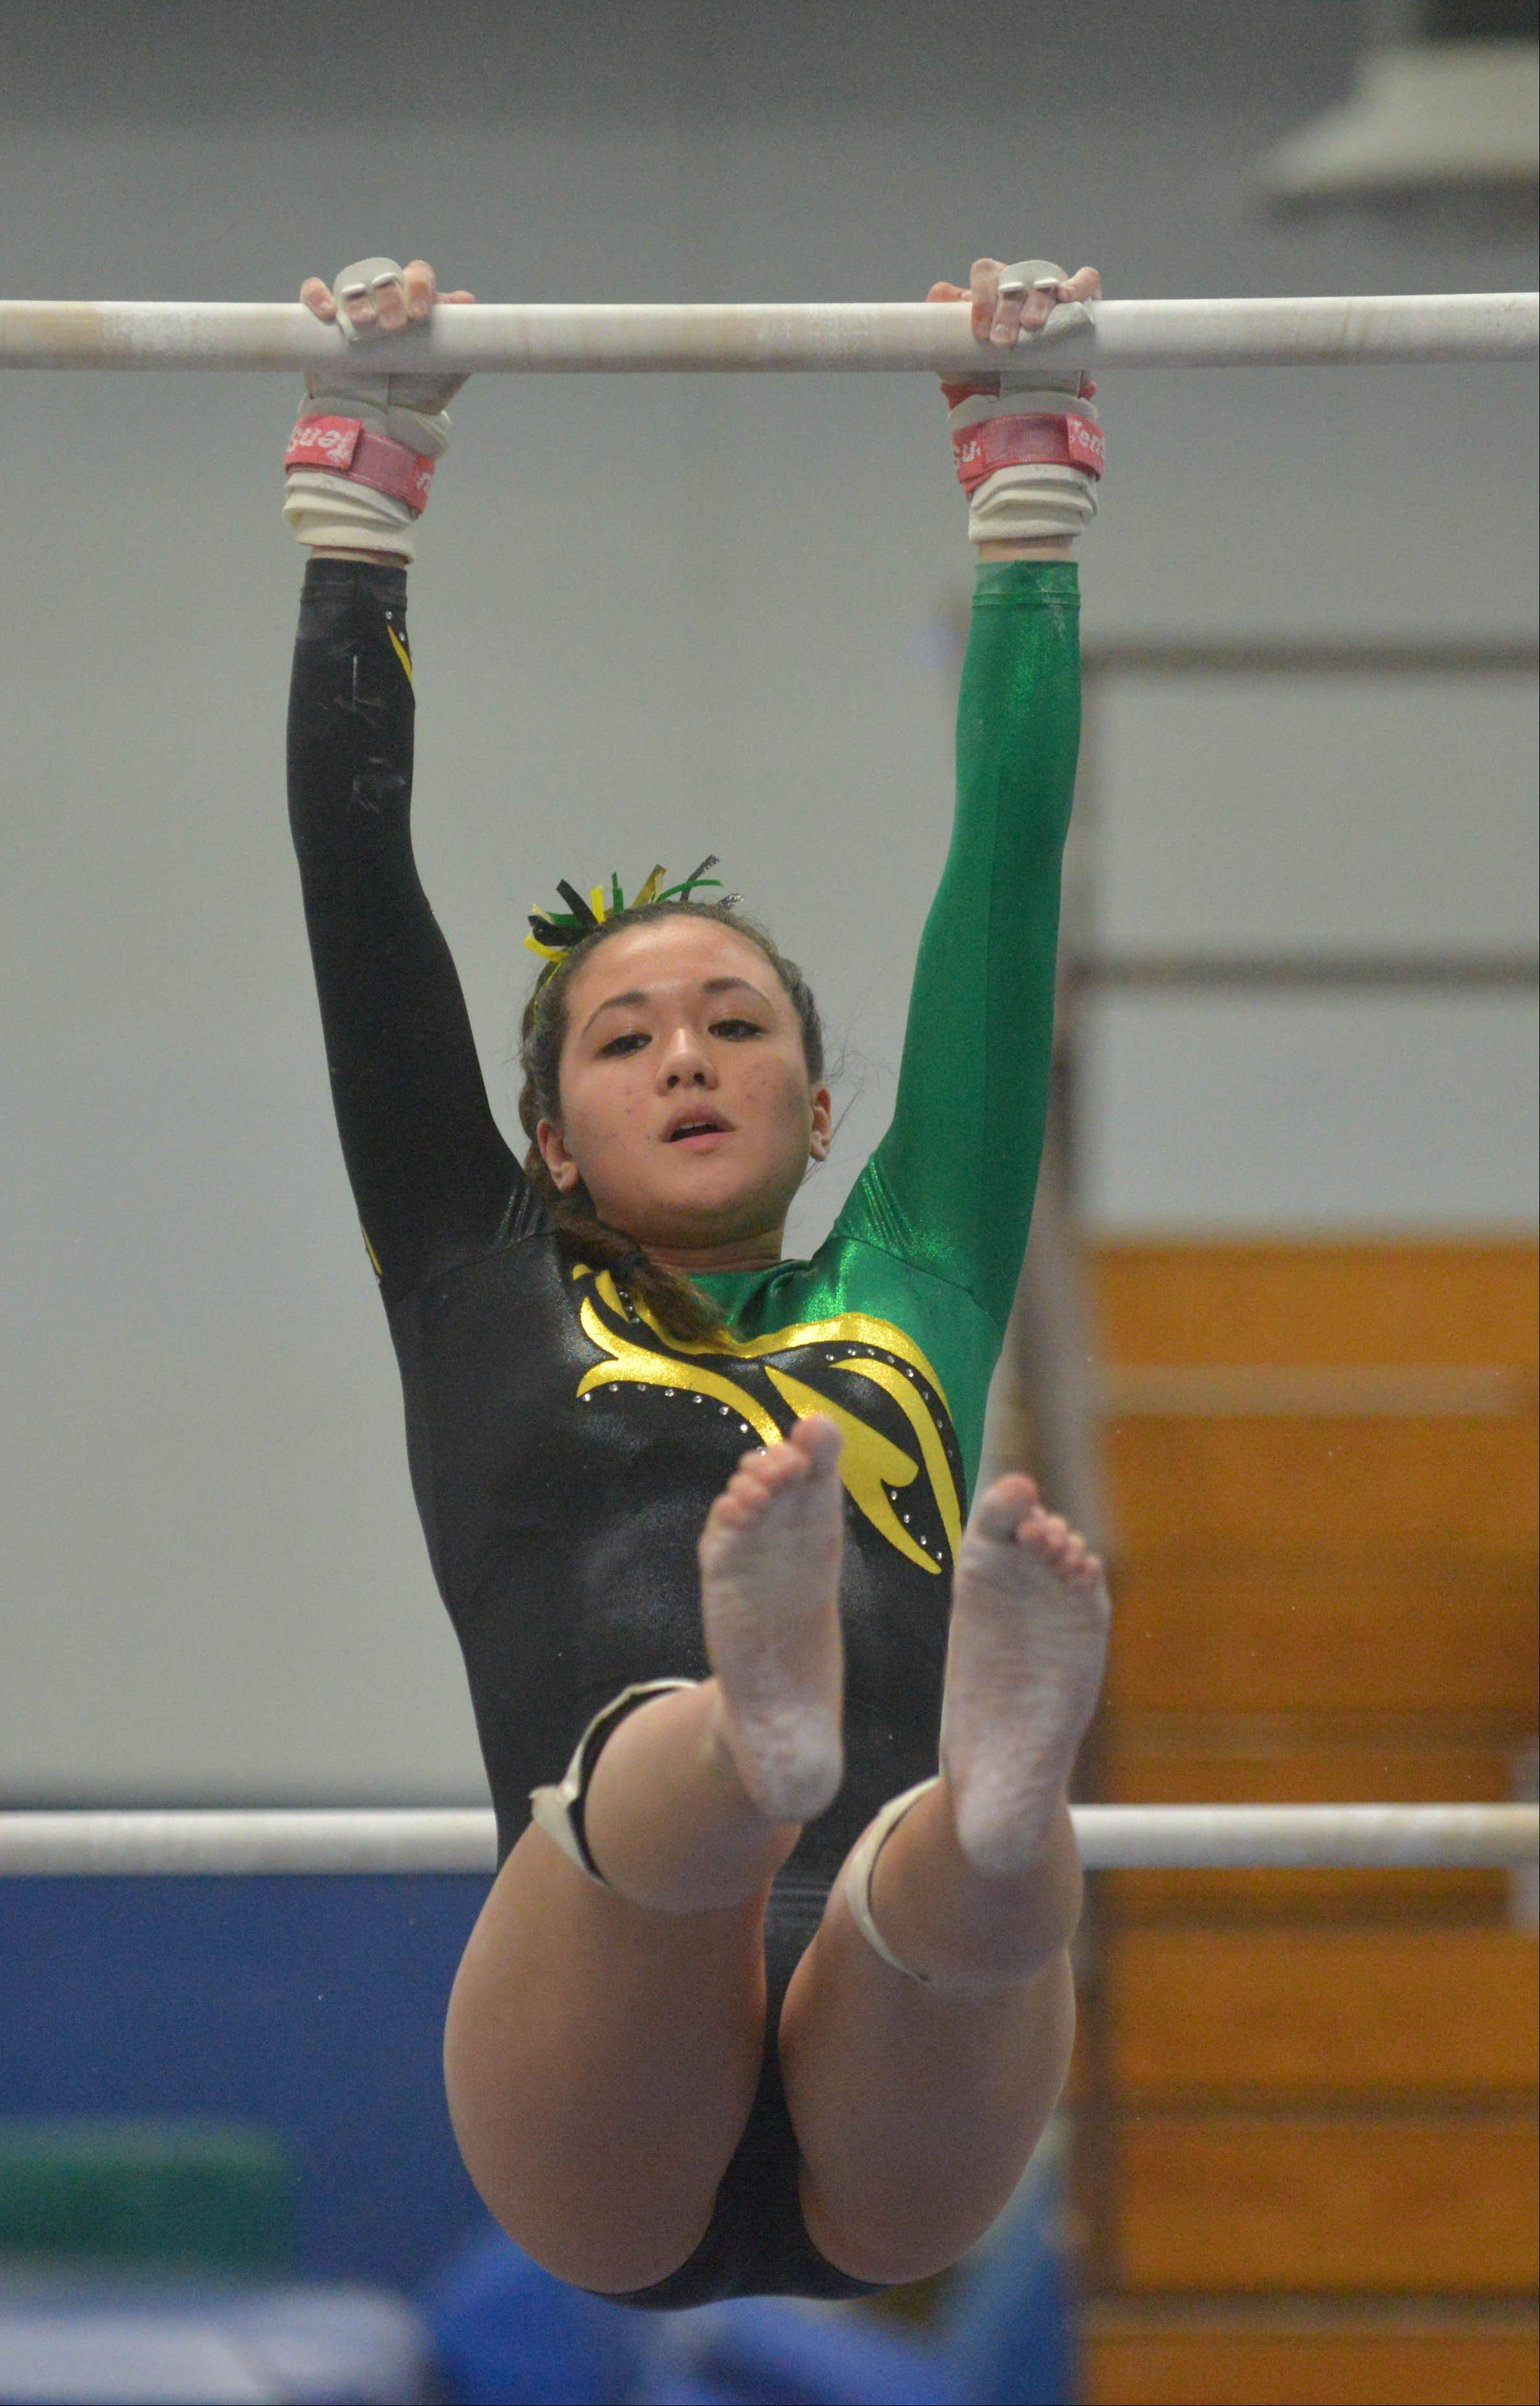 Lauren Madamba of Waubonsie Valley on the Uneven parallel bars during the Naperville North girls gymnastics regional Thursday at Naperville North High School in Naperville.